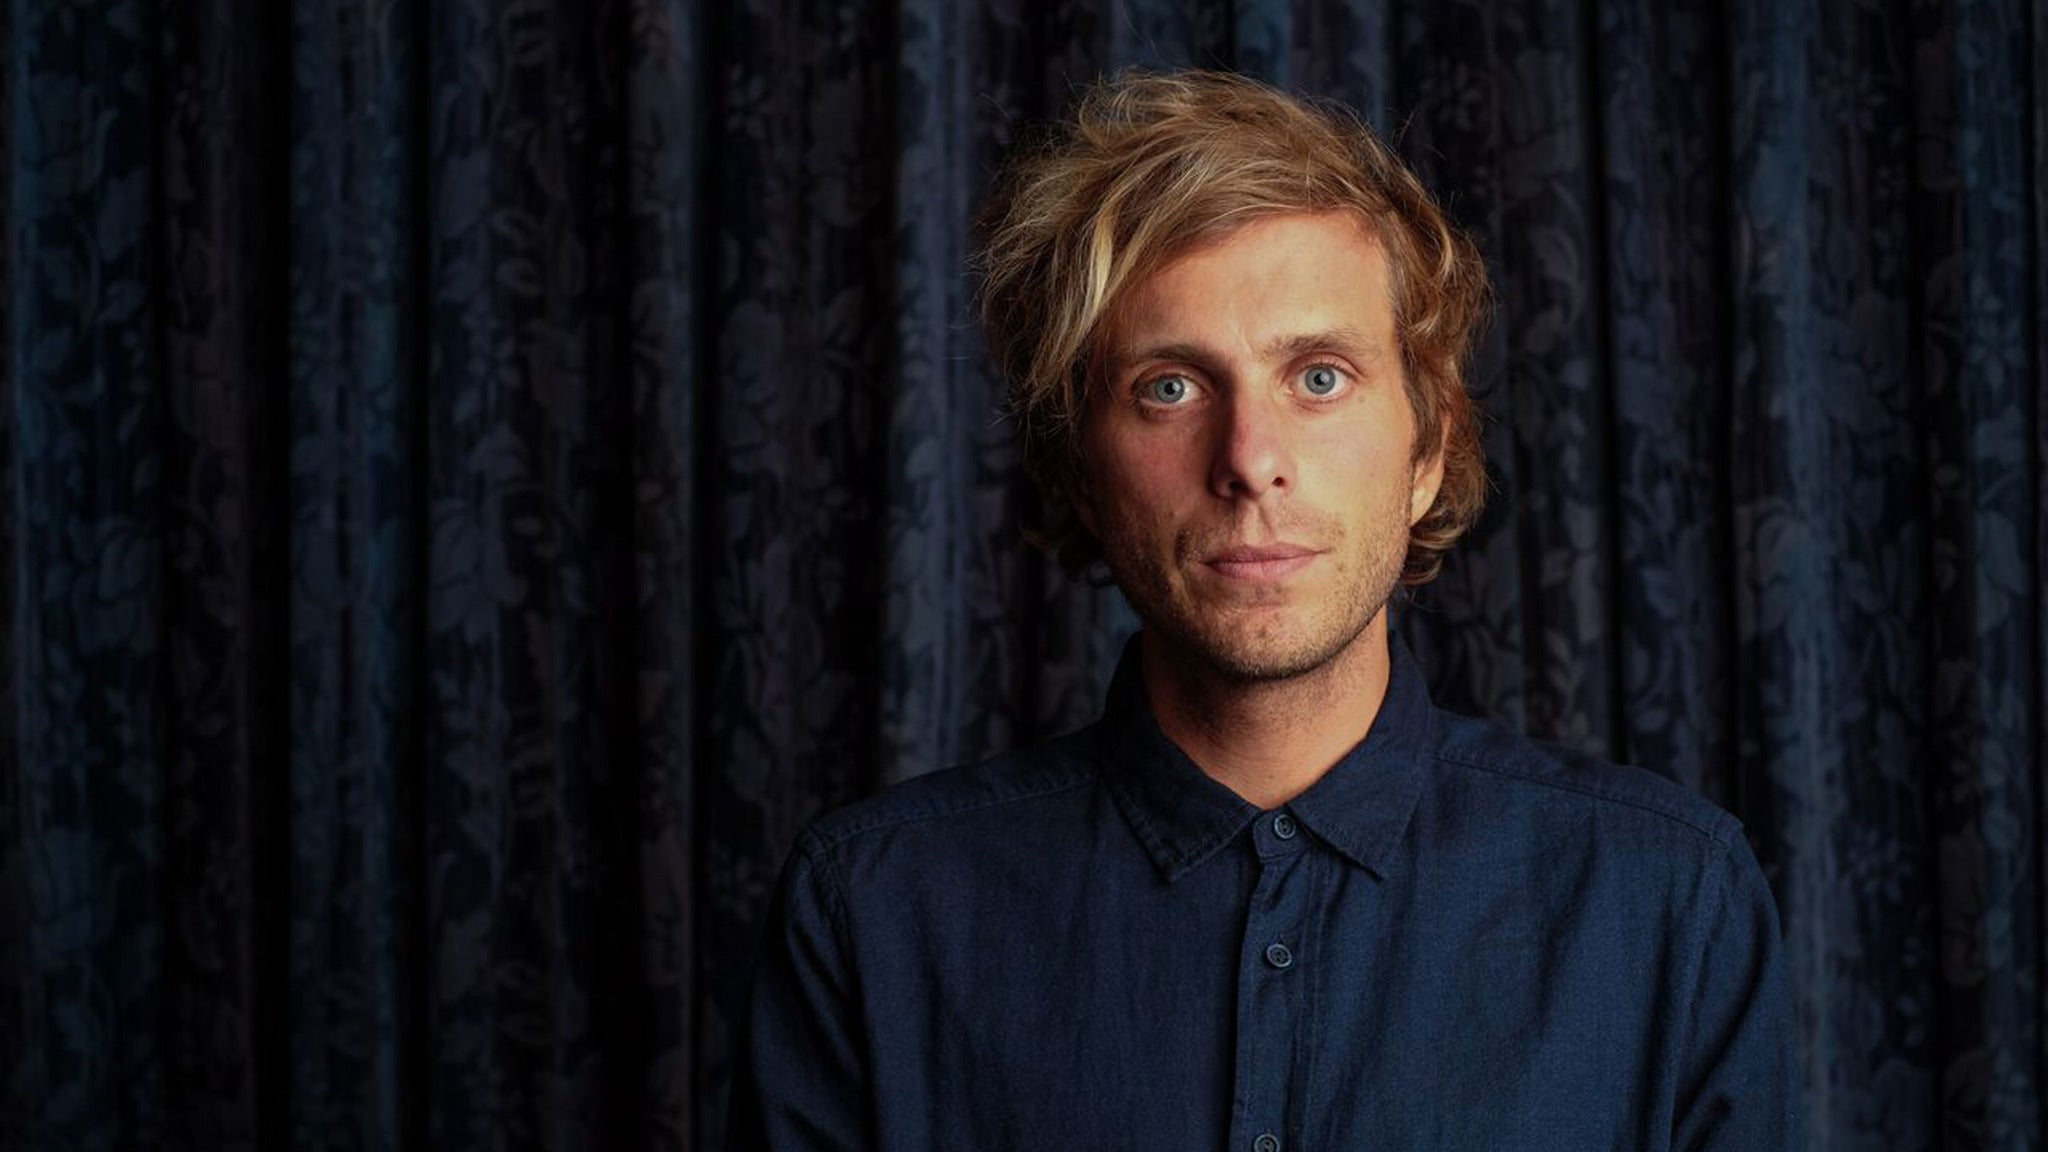 AWOLNATION (Moved to House of Blues)